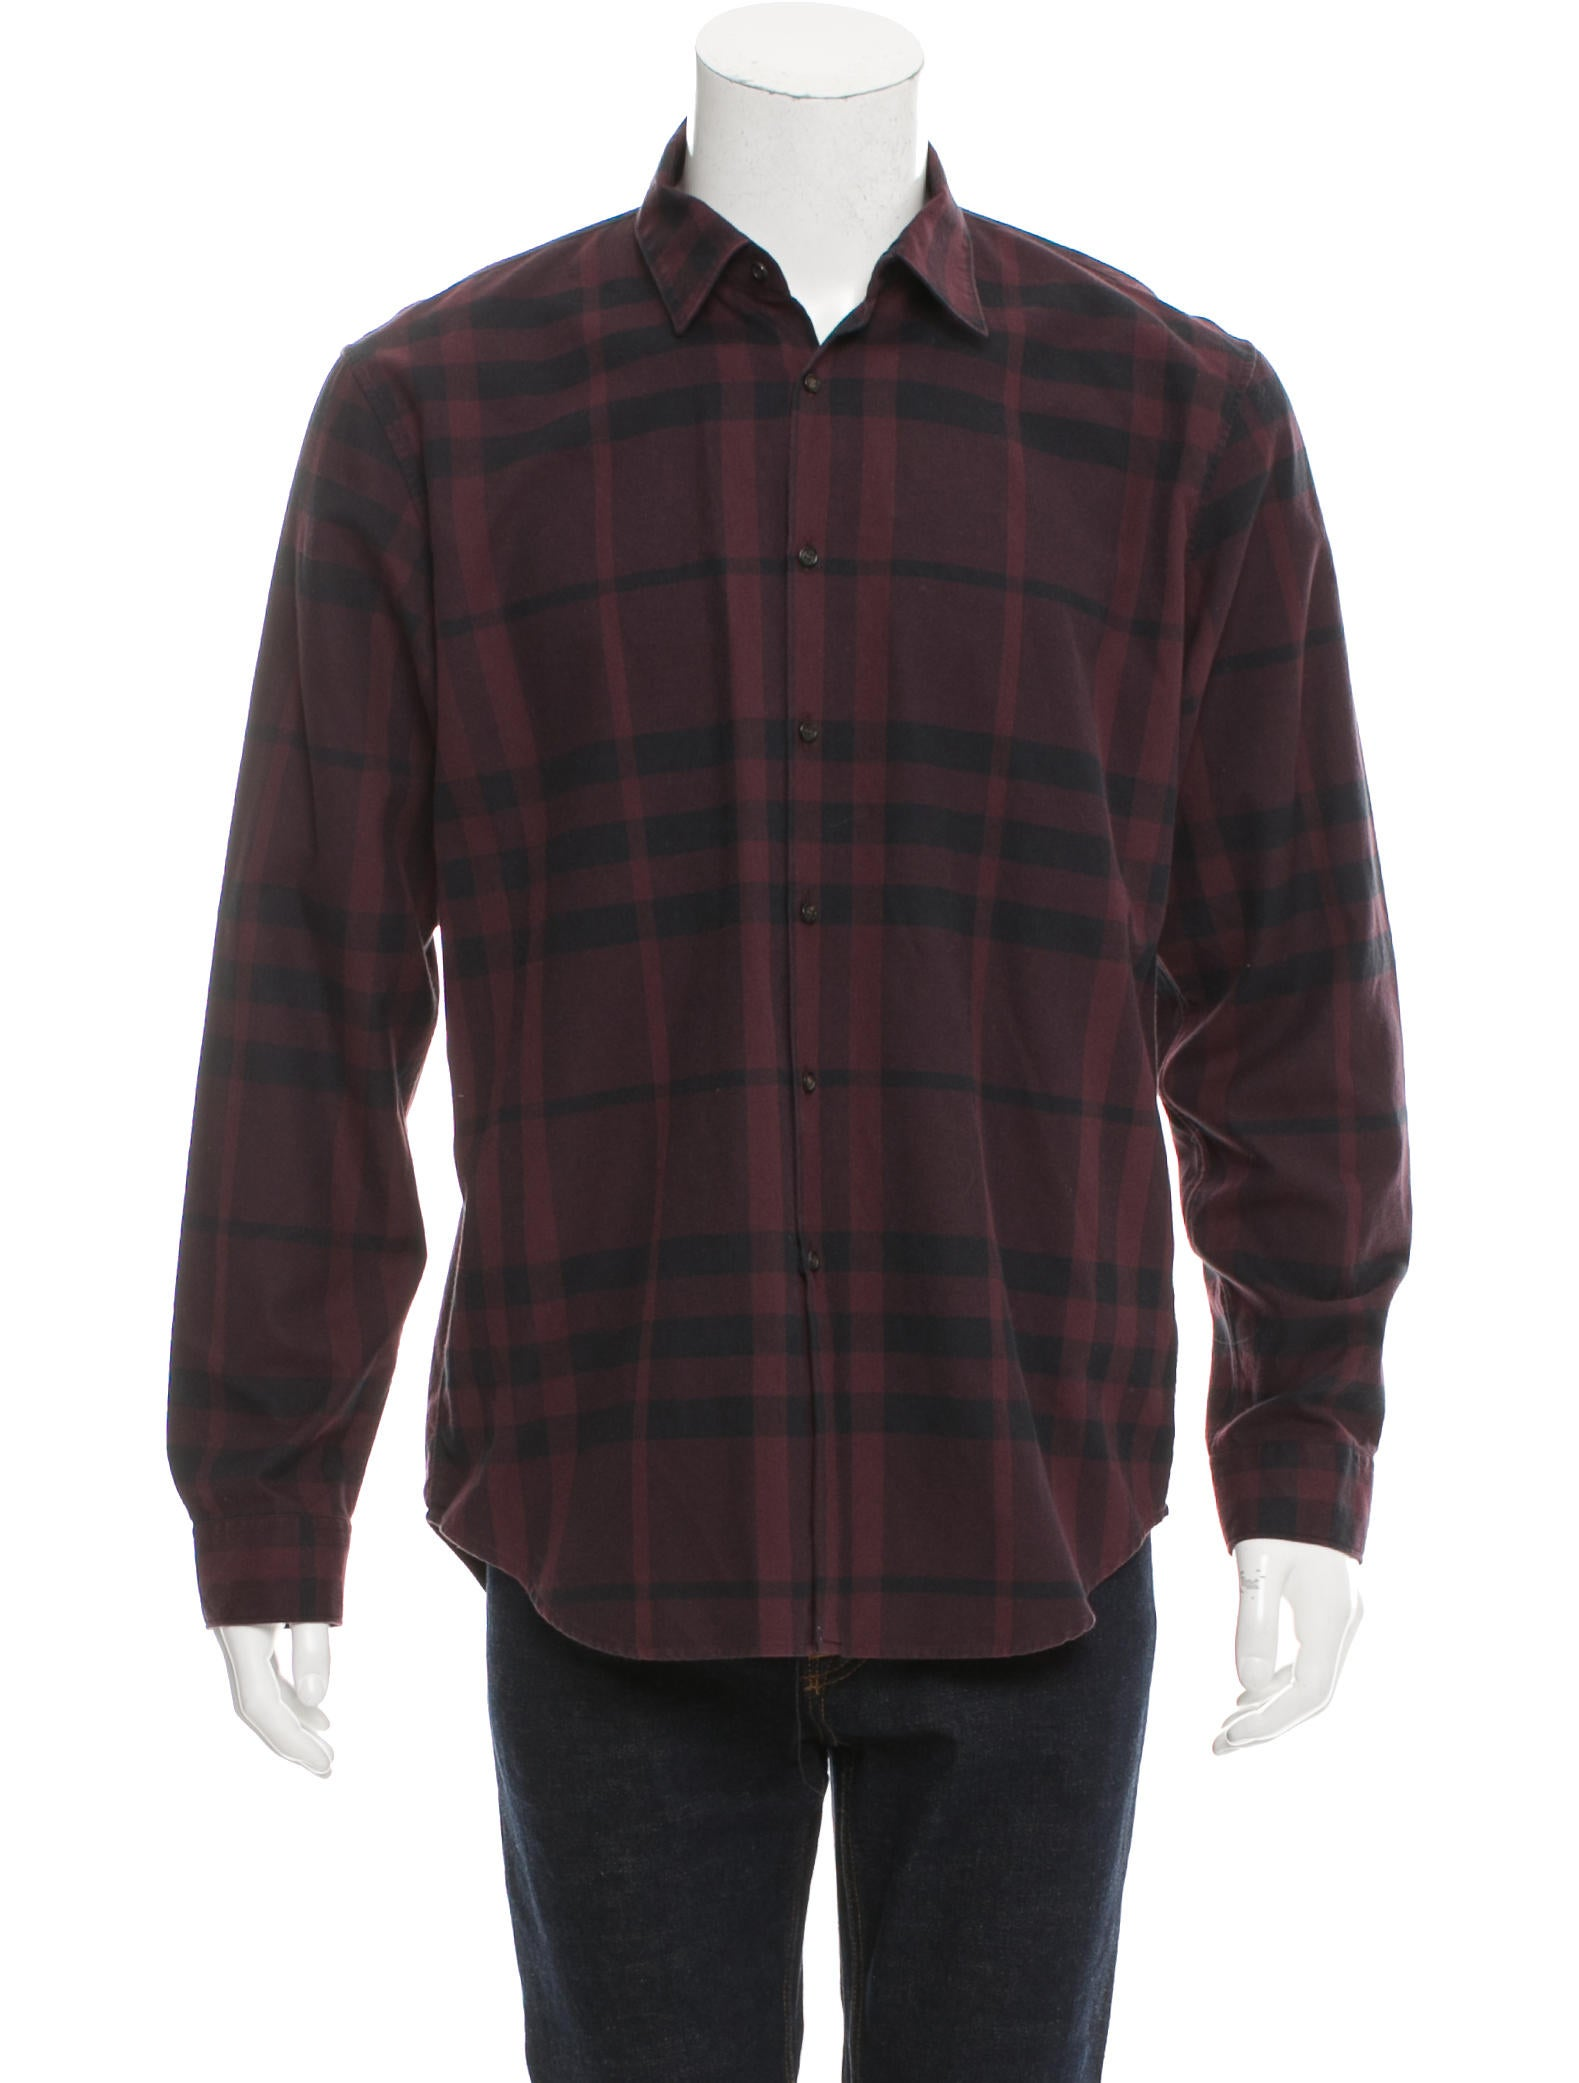 Burberry London Exploded Check Print Button Up Shirt